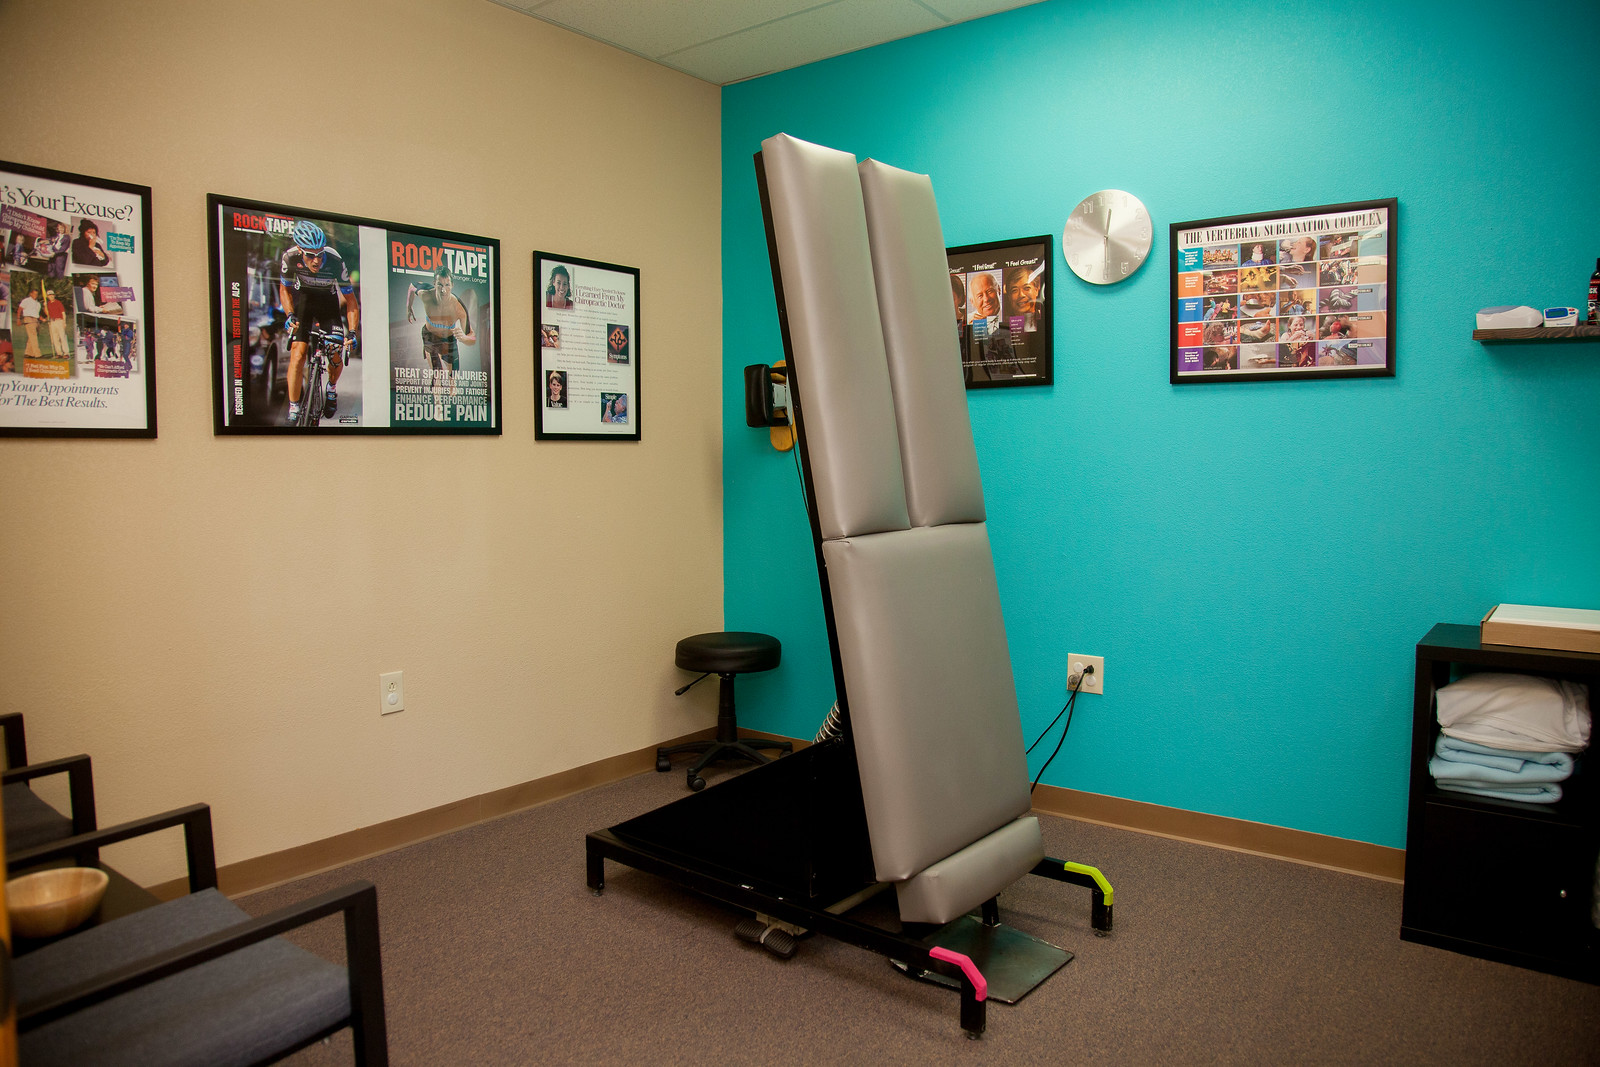 chiropractic care About Us IMG 1622 X3